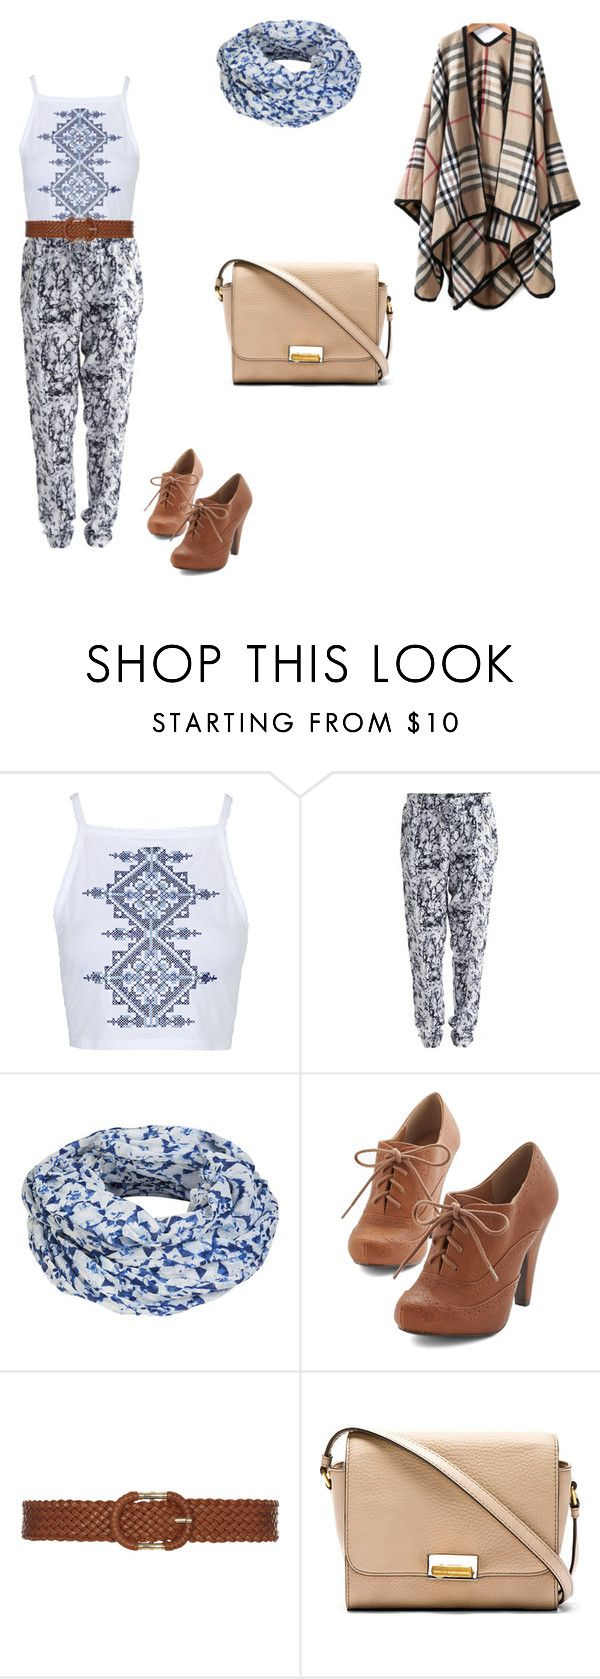 """""""Work"""" by caitlinbrooks ❤ liked on Polyvore featuring Topshop, Object Collectors Item, ONLY, Dorothy Perkins and Marc by Marc Jacobs"""